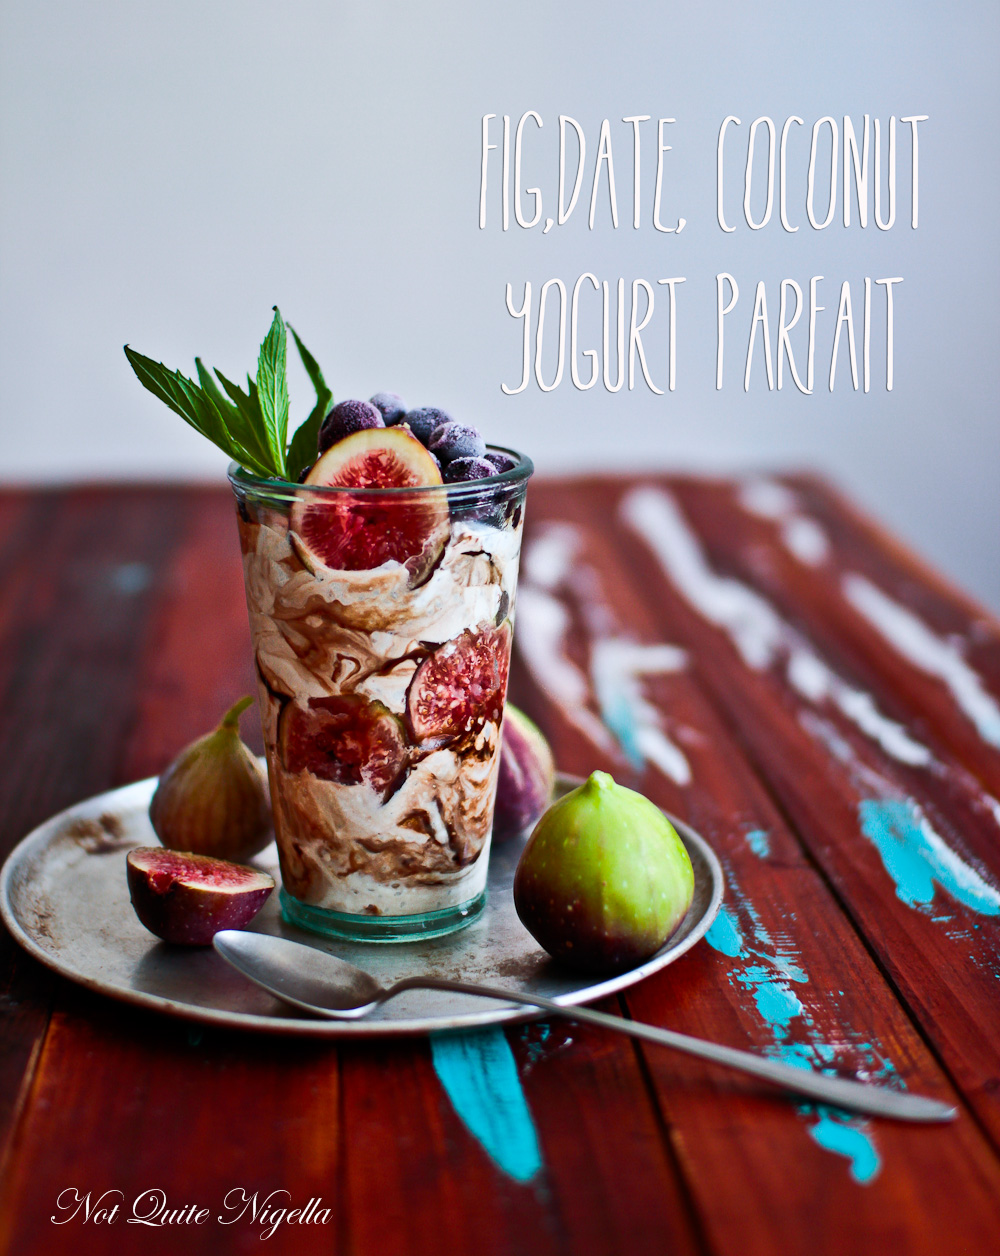 Breakfast Yogurt Recipe Parfait